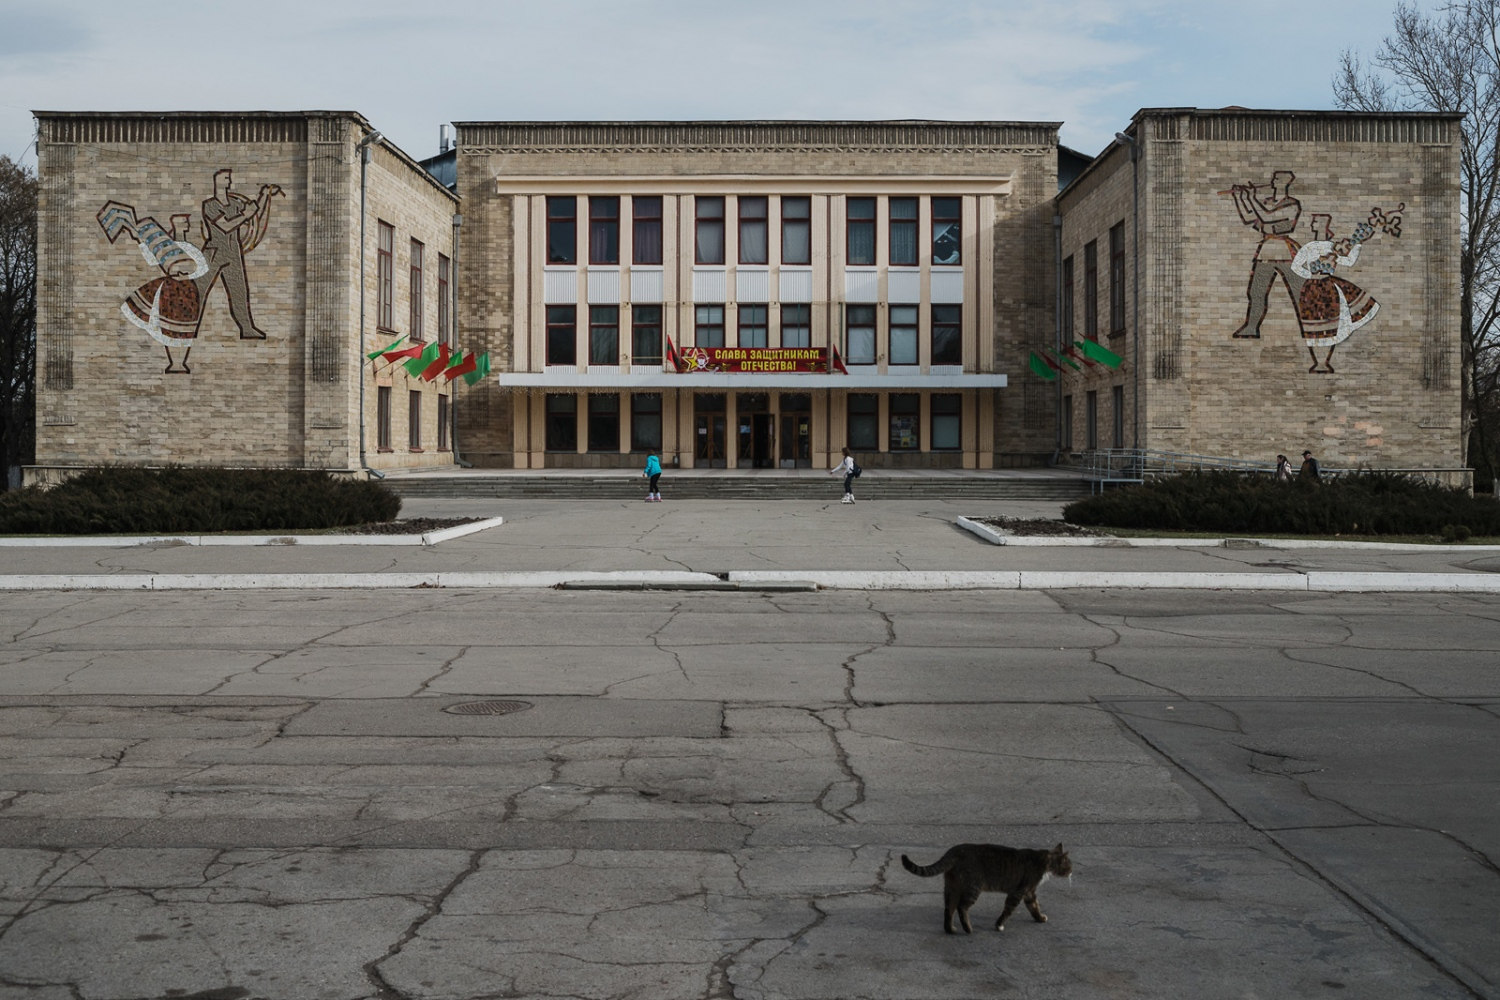 Even though its a public holiday, Defender of Fatherland Day, there is not many people out in the streets of Benderi, a border town to Moldova.